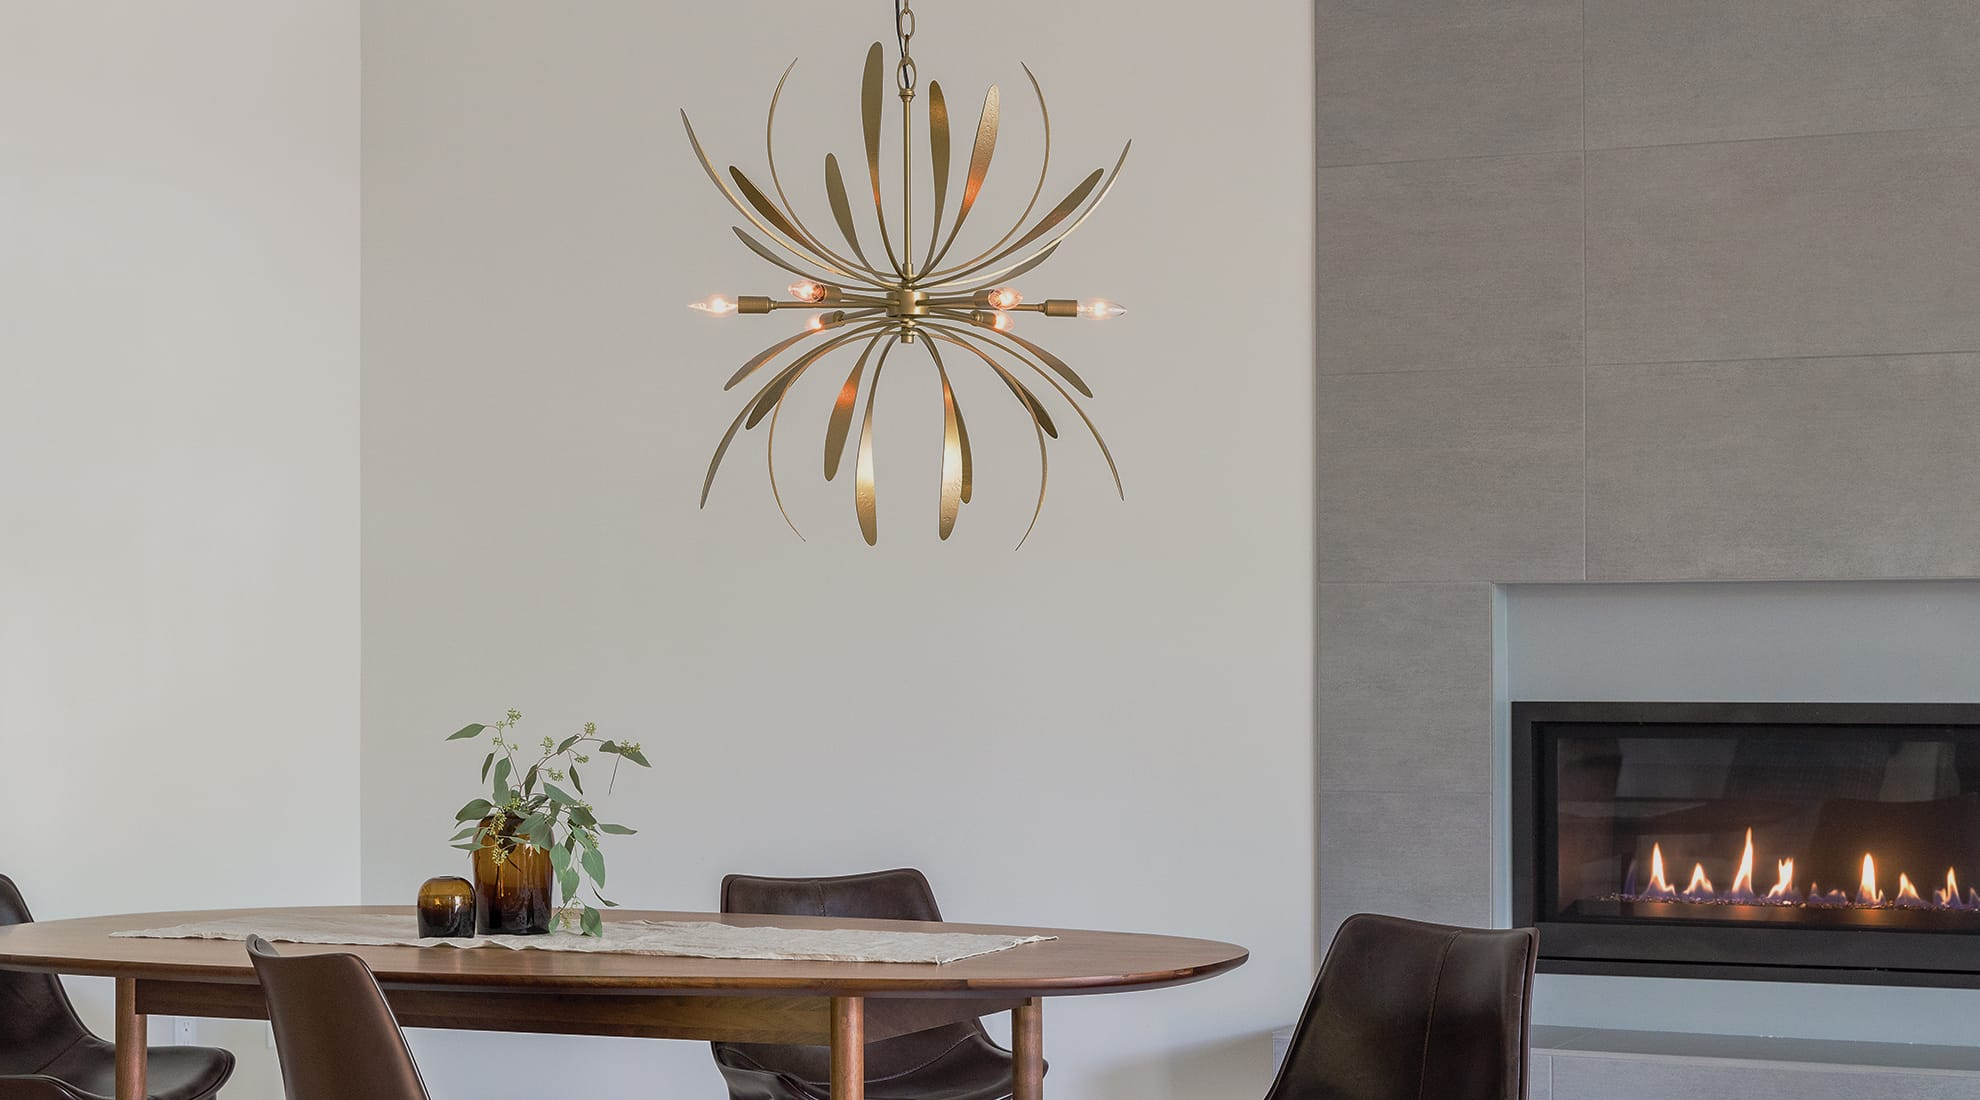 Behind The Design: A Q&A with Hubbardton Forge